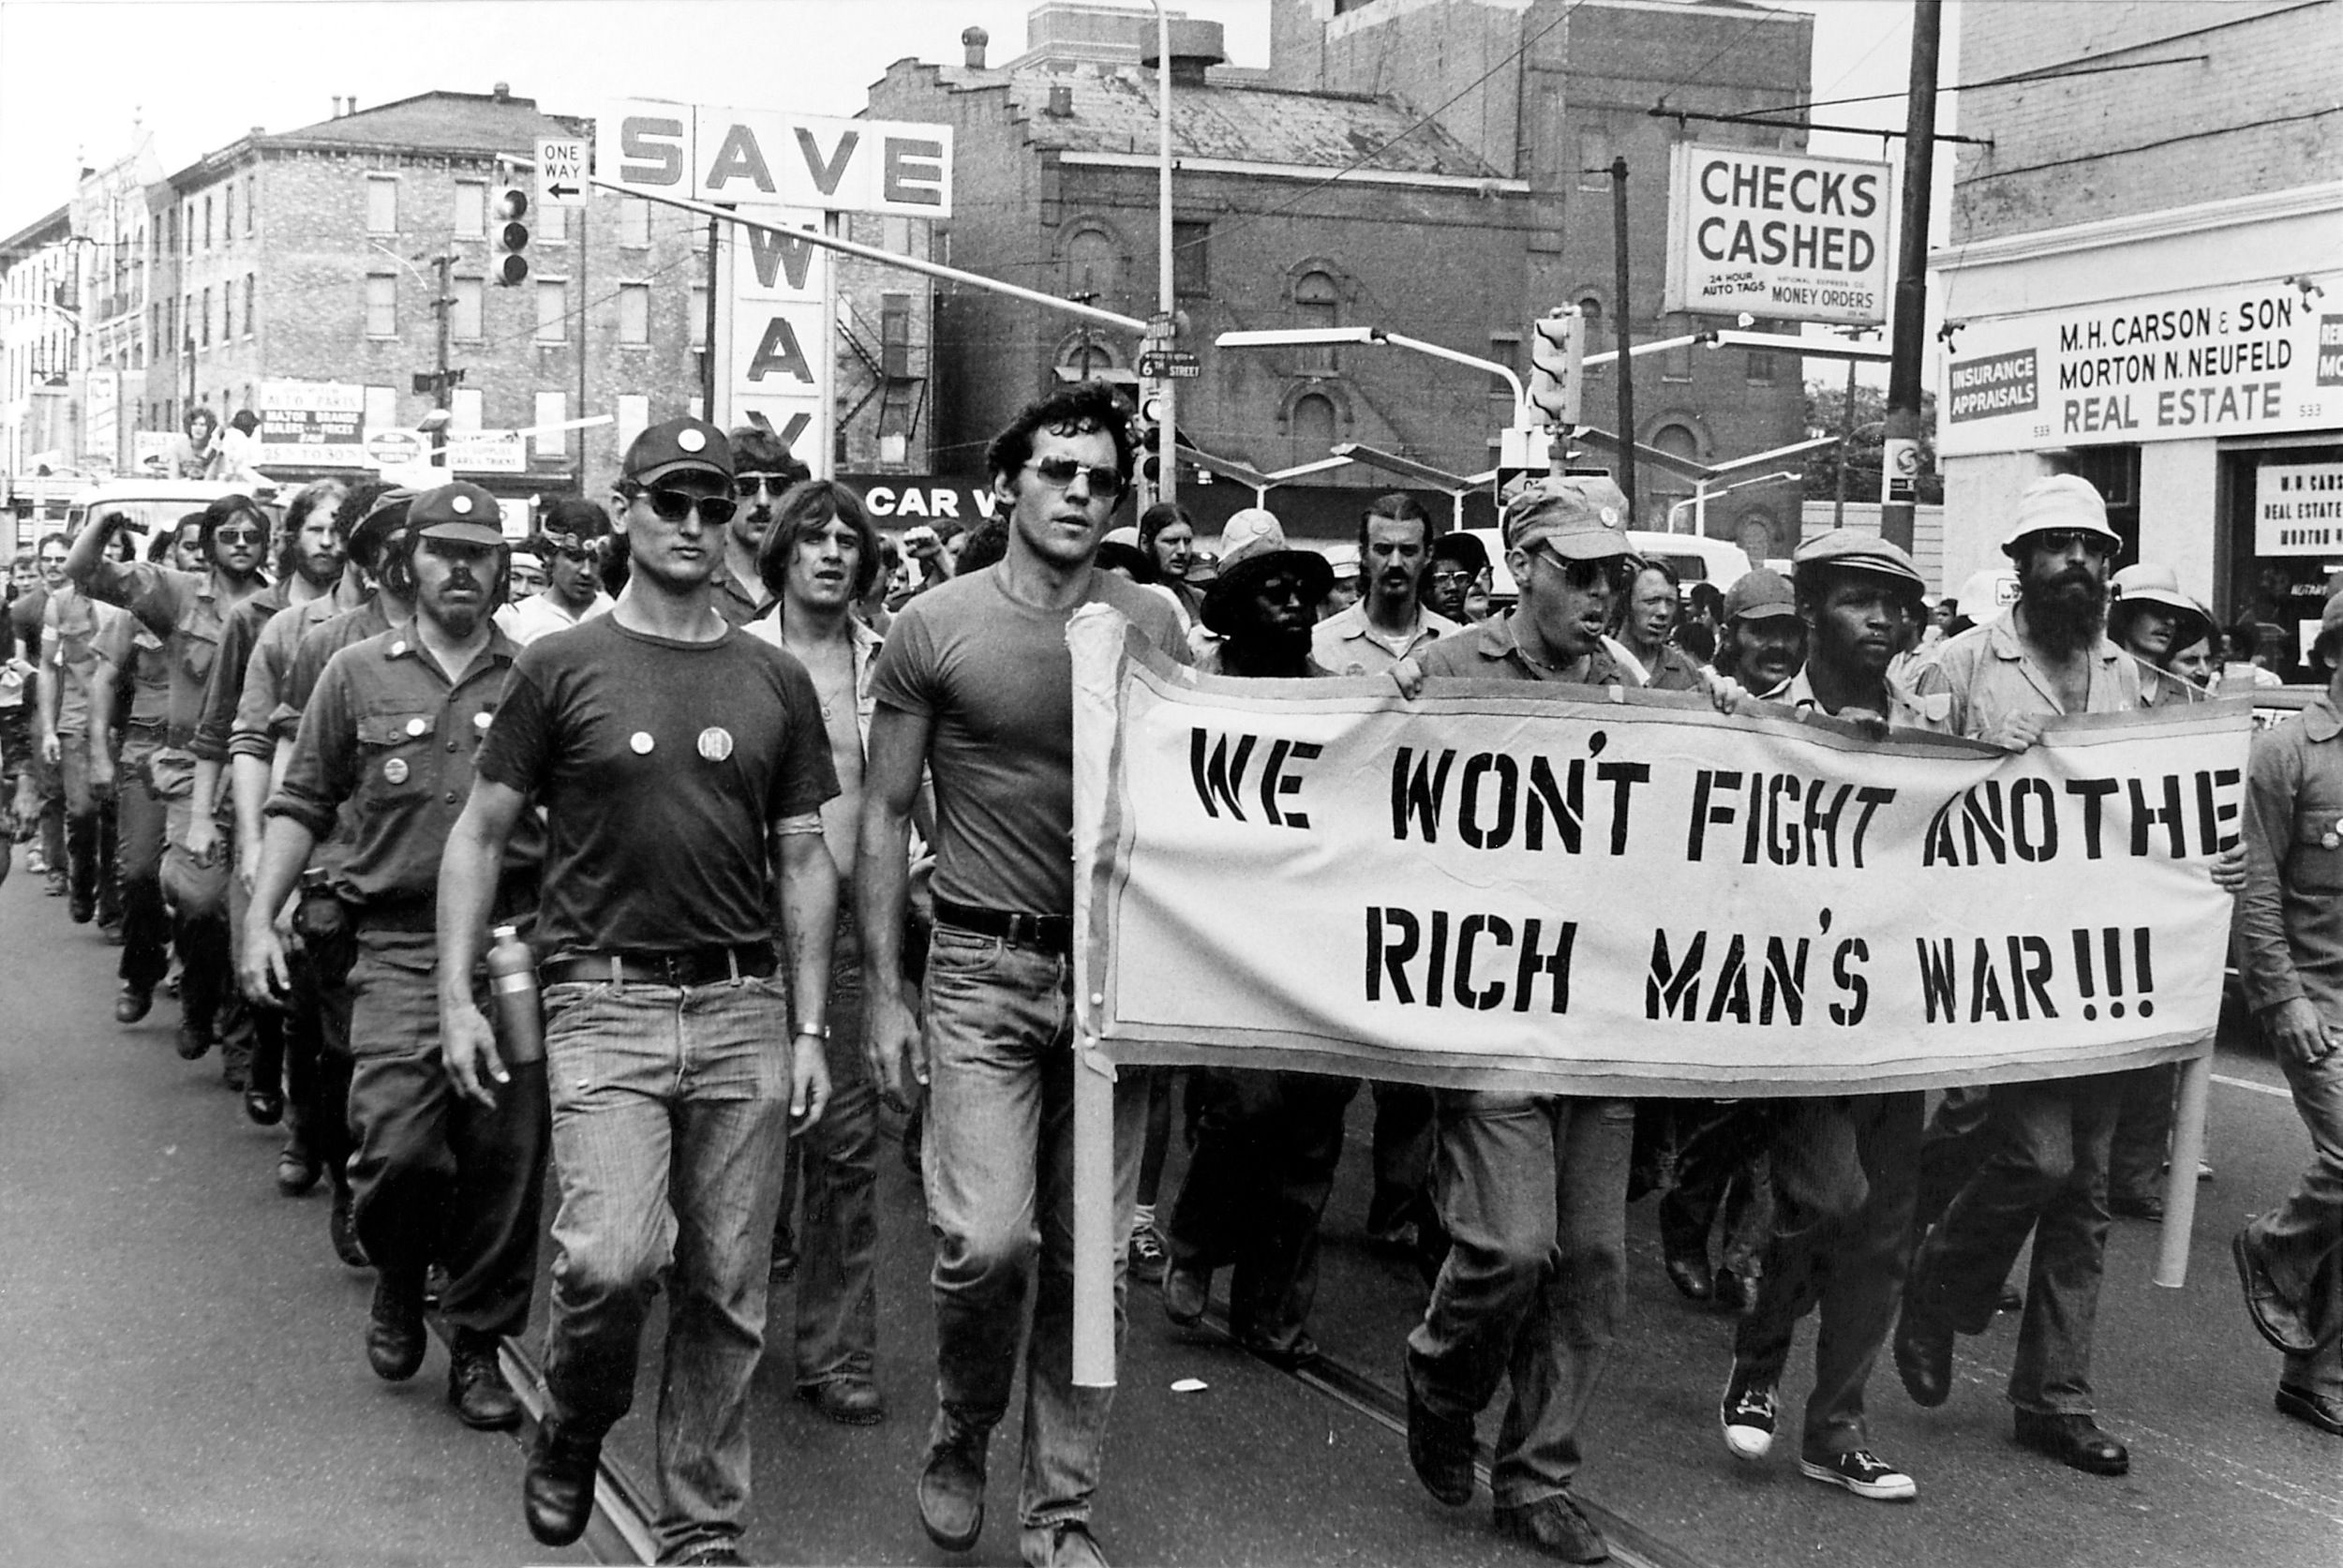 Vietnam War protest, Philadelphia, PA | The 60s | Pinterest | The ...